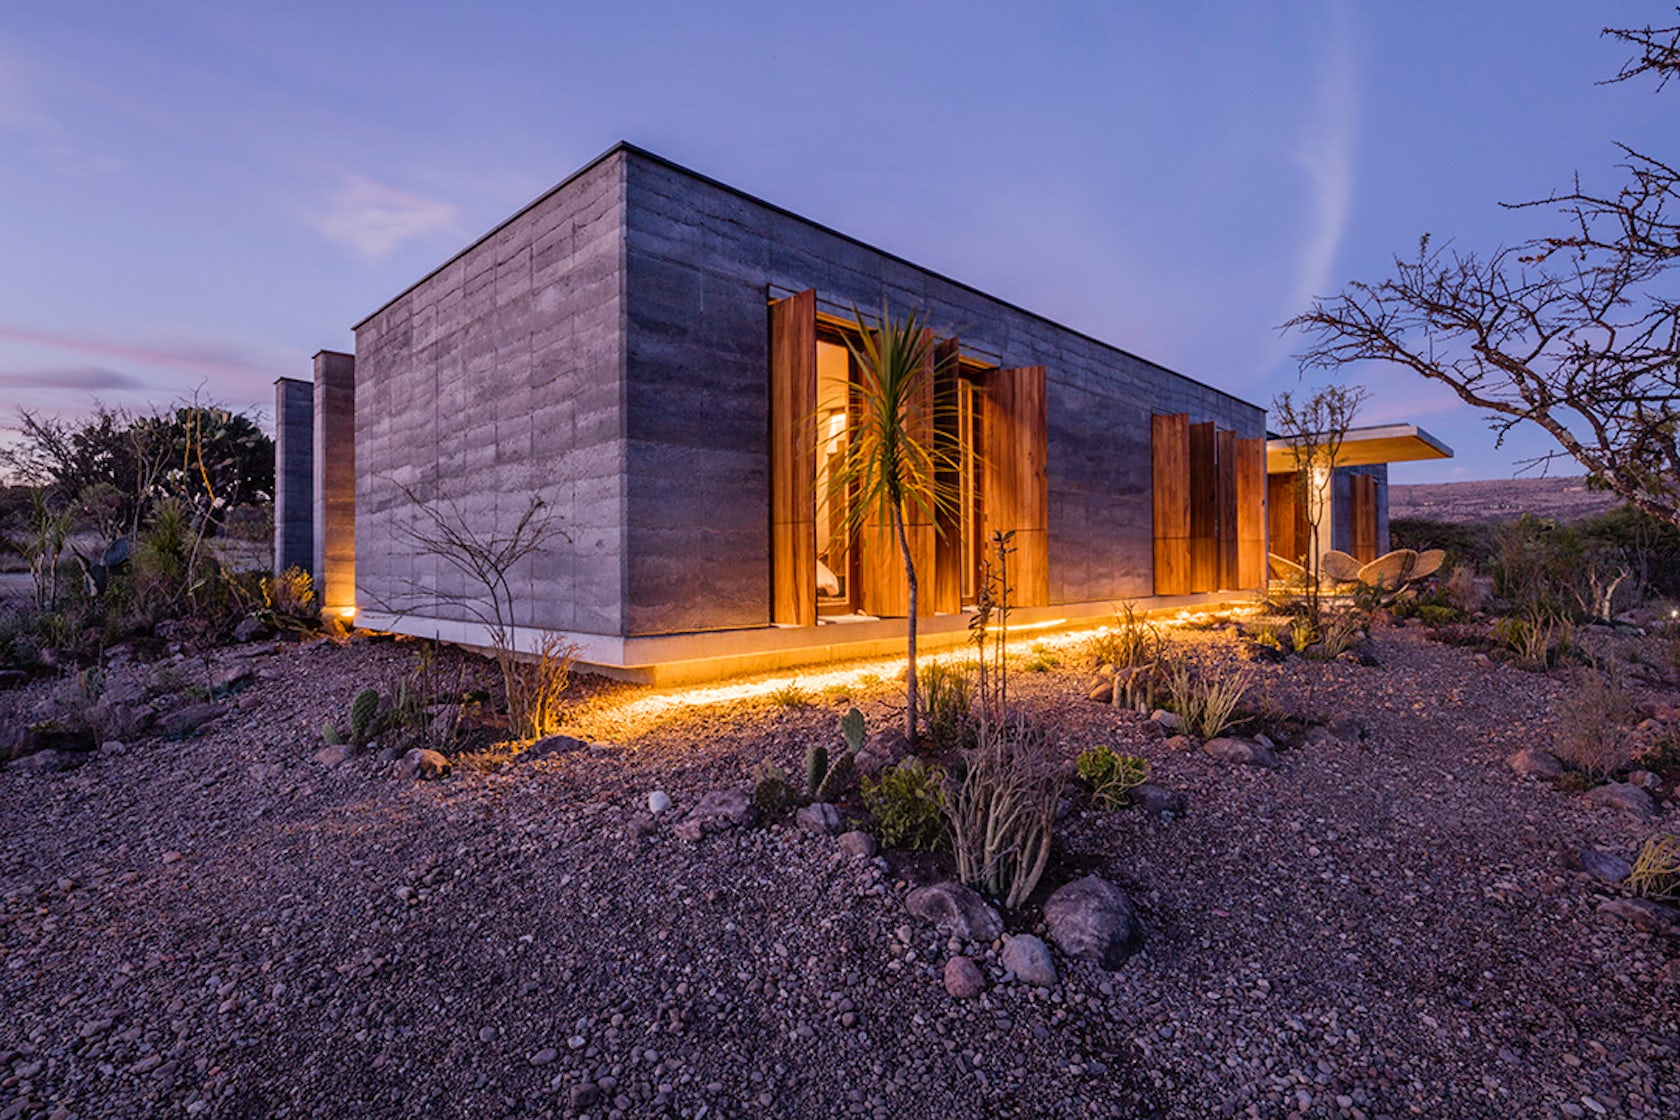 Vernacular modernism 7 contemporary homes in rural mexico - The cave the modern home in the mexican desert ...